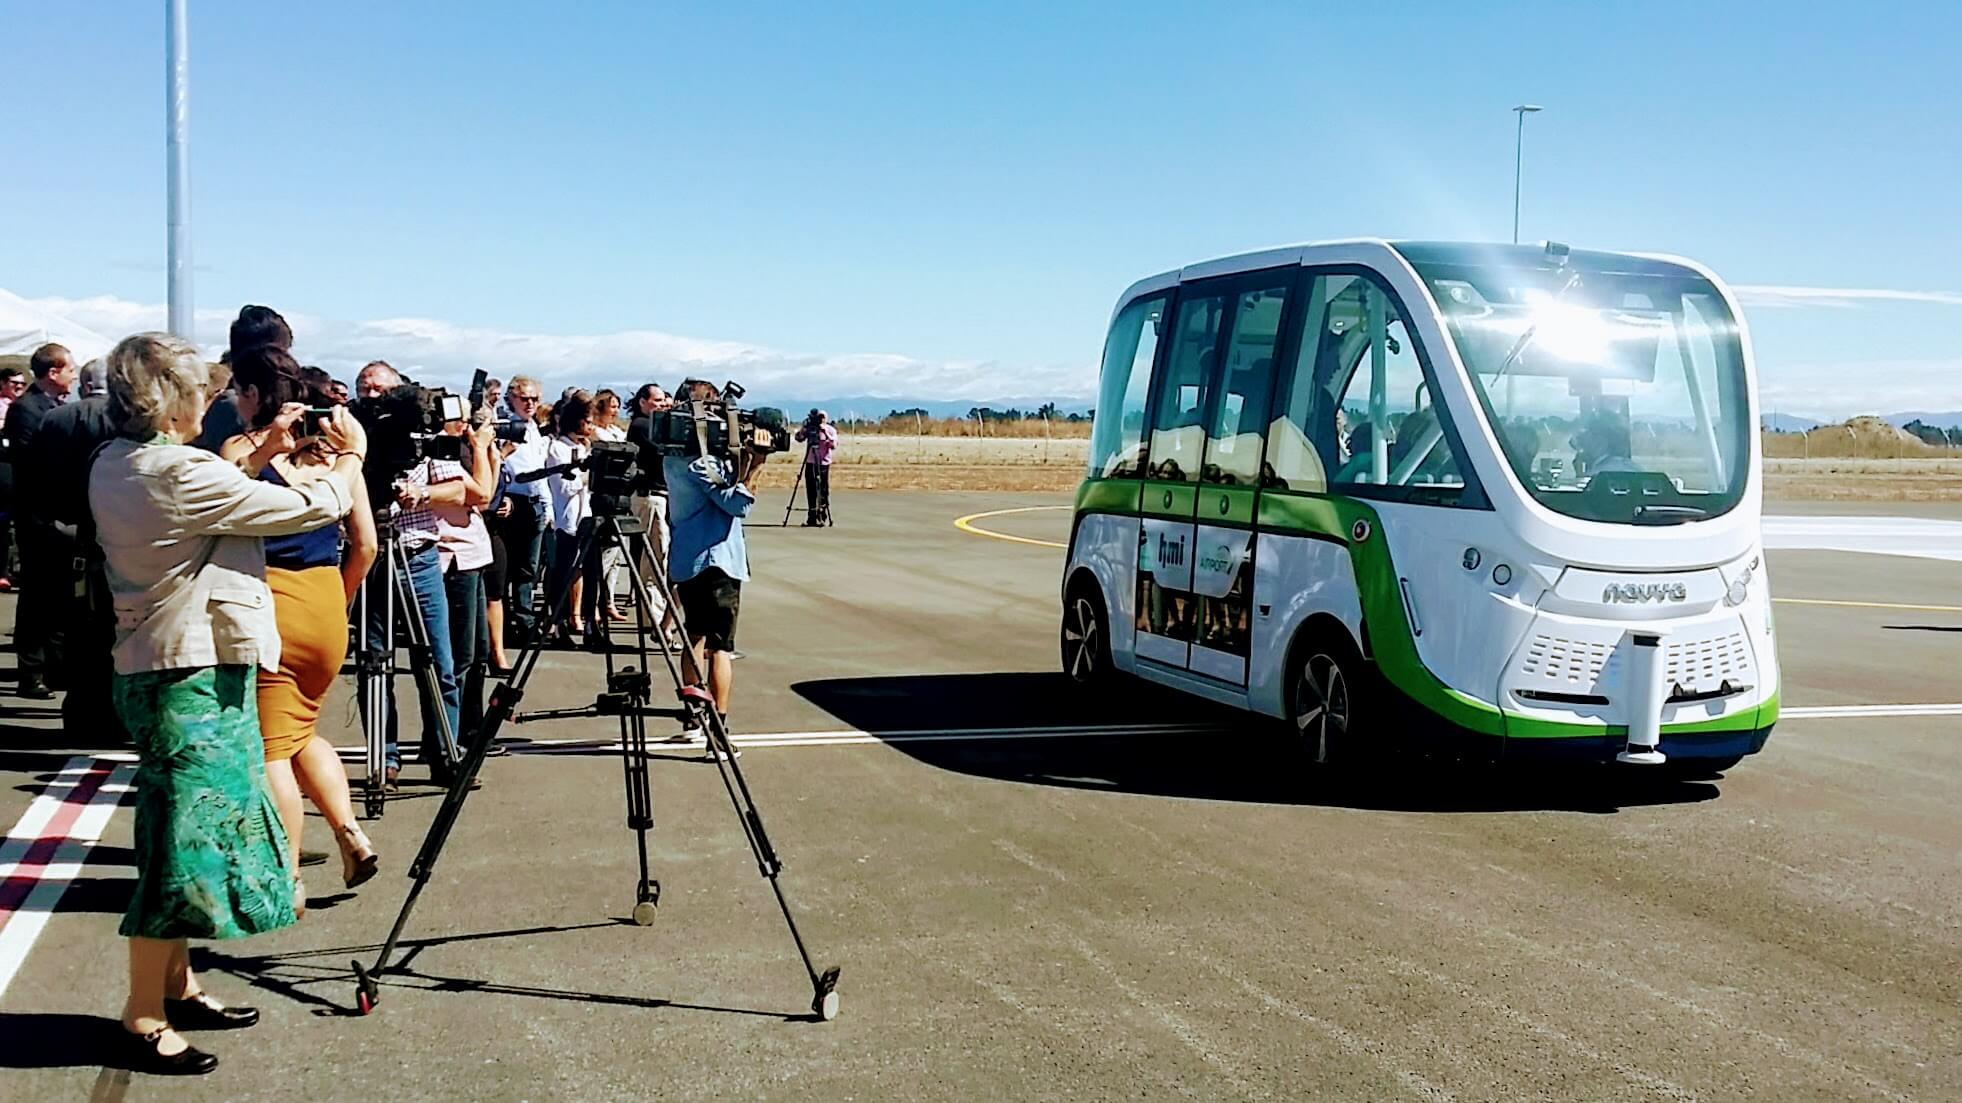 Autonomous Vehicle trial launched in New Zealand by HMI Technologies